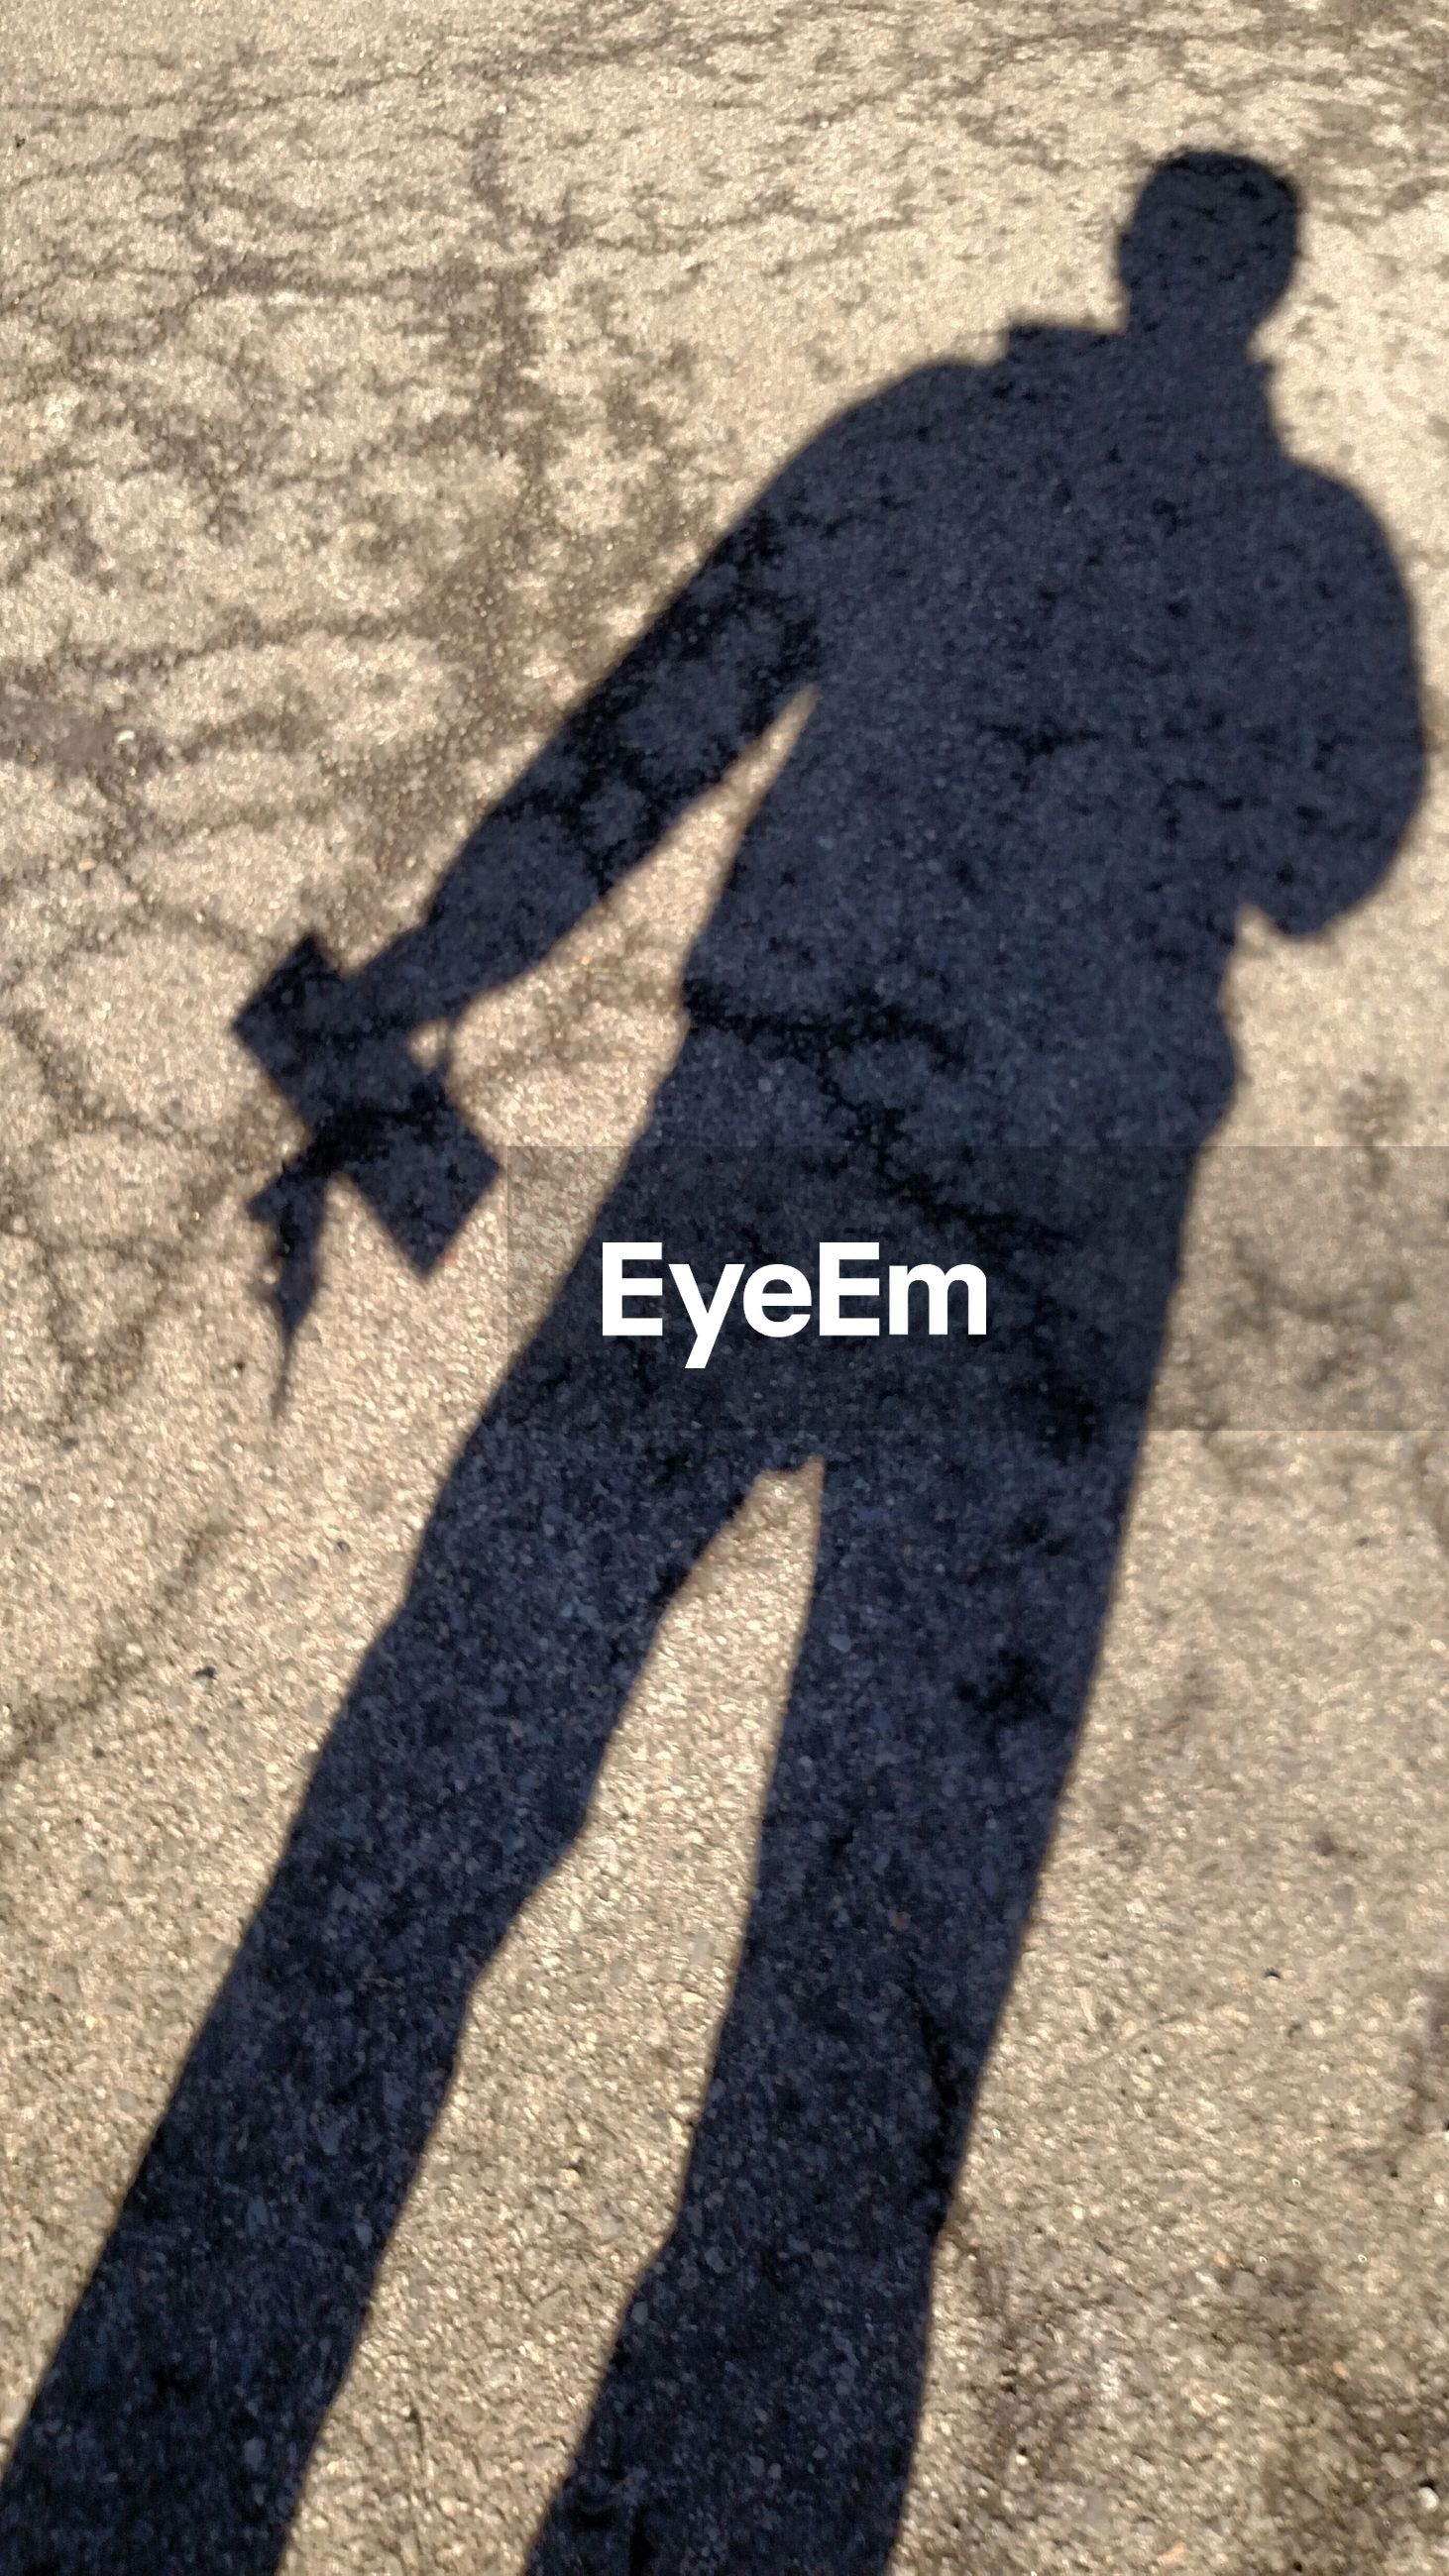 Shadow of a man on the ground